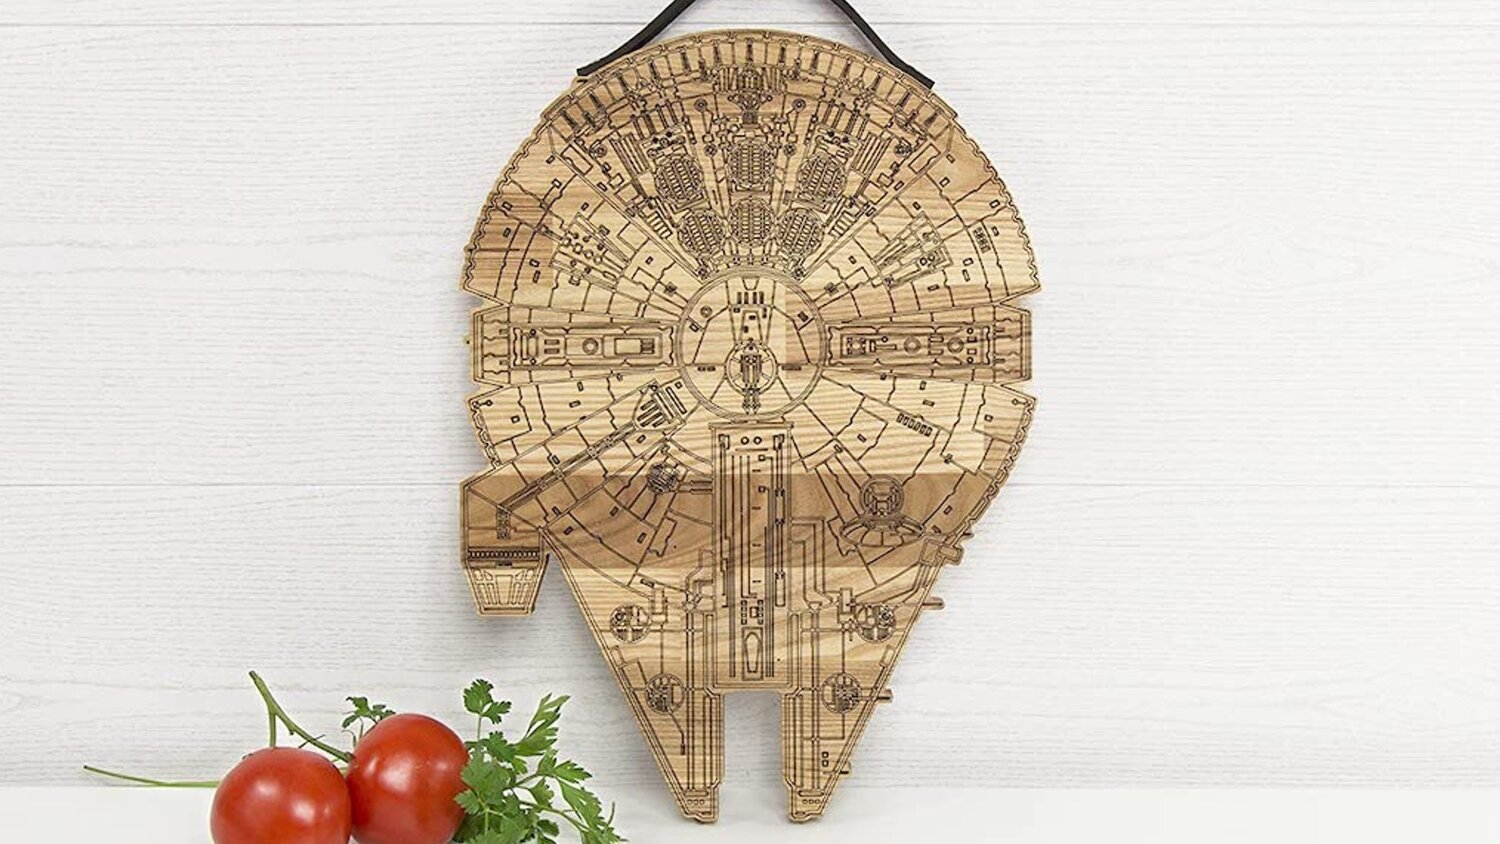 Chop it Chewy! Check Out This Millennium Falcon Cutting Board — GeekTyrant